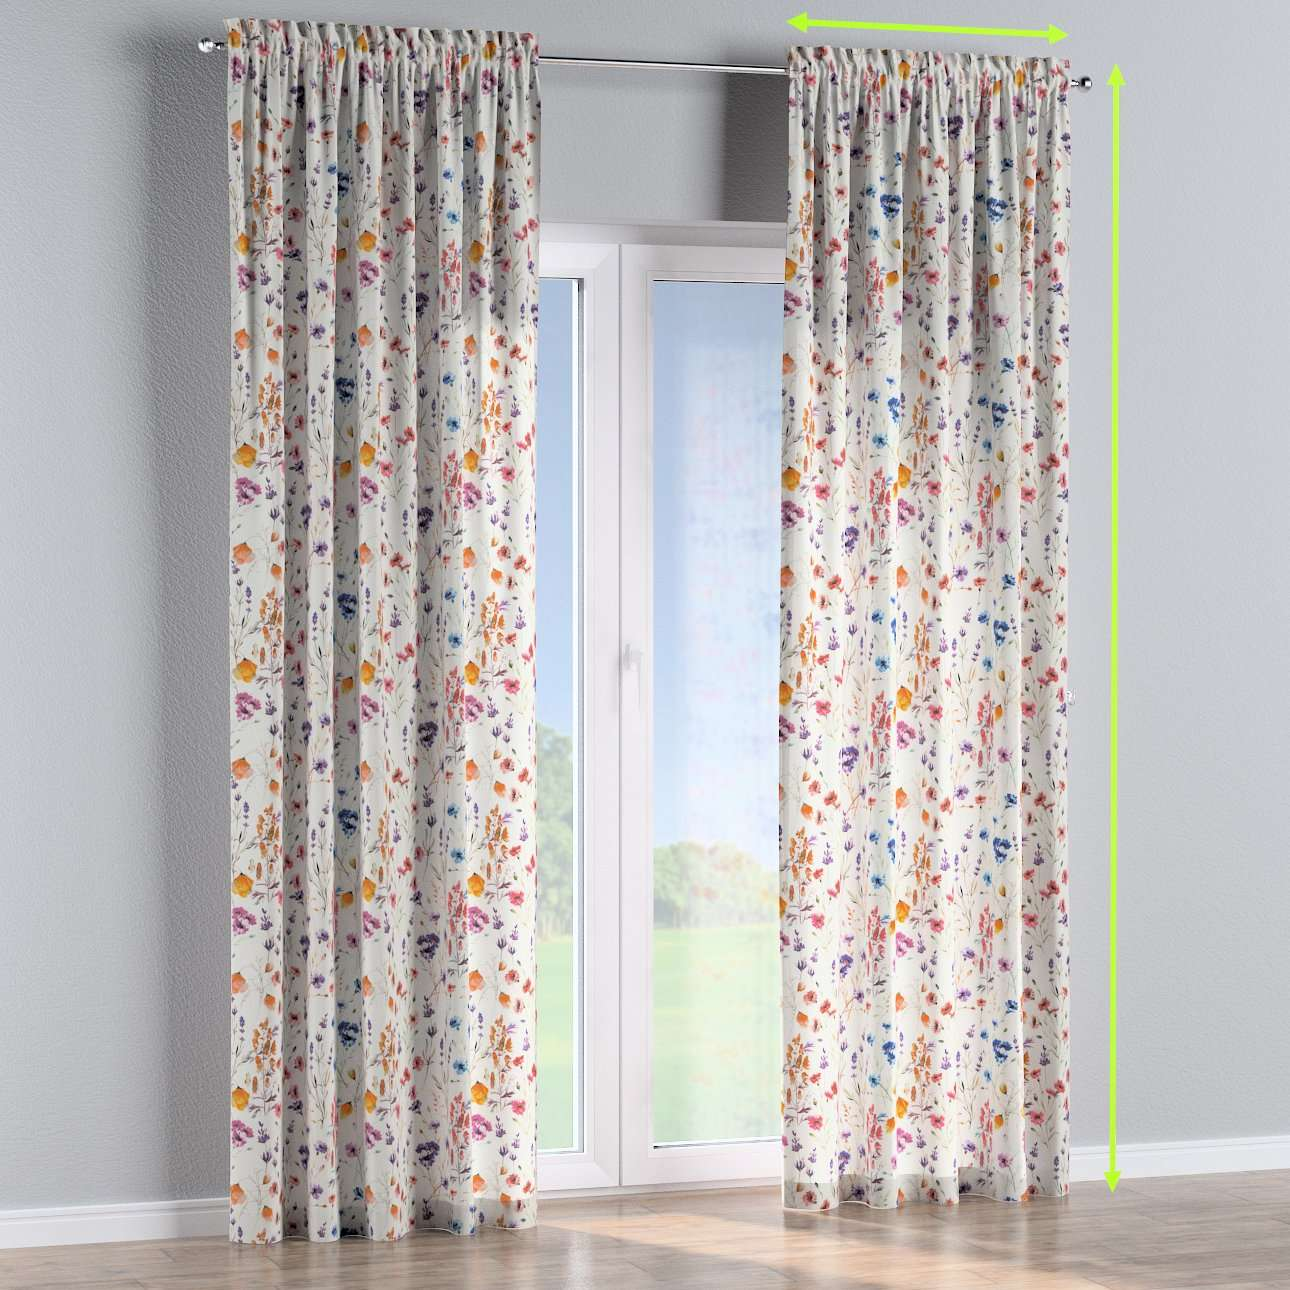 Slot and frill lined curtains in collection Flowers, fabric: 141-53